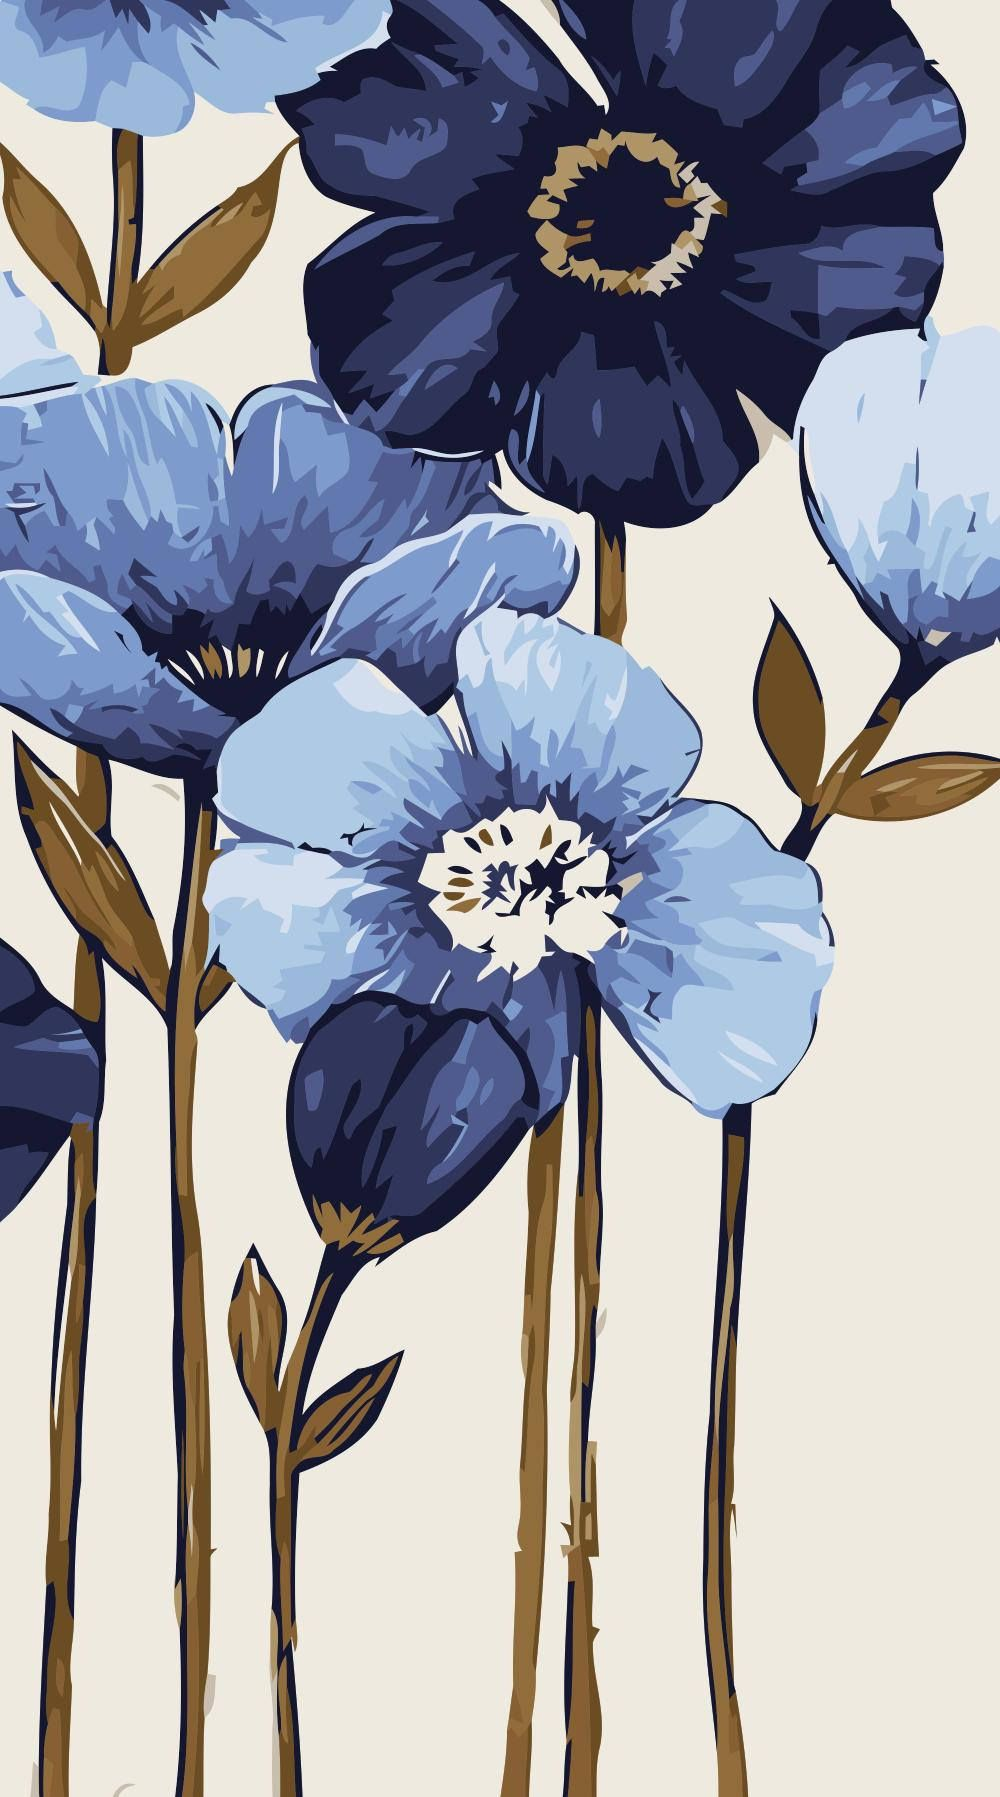 Coloring By Number Kit 40 80cm Diy Painting Flower Painting Picture On Canvas Paint Coloring By Number Diy Painti Coloring Canvas Canvas Painting Diy Painting